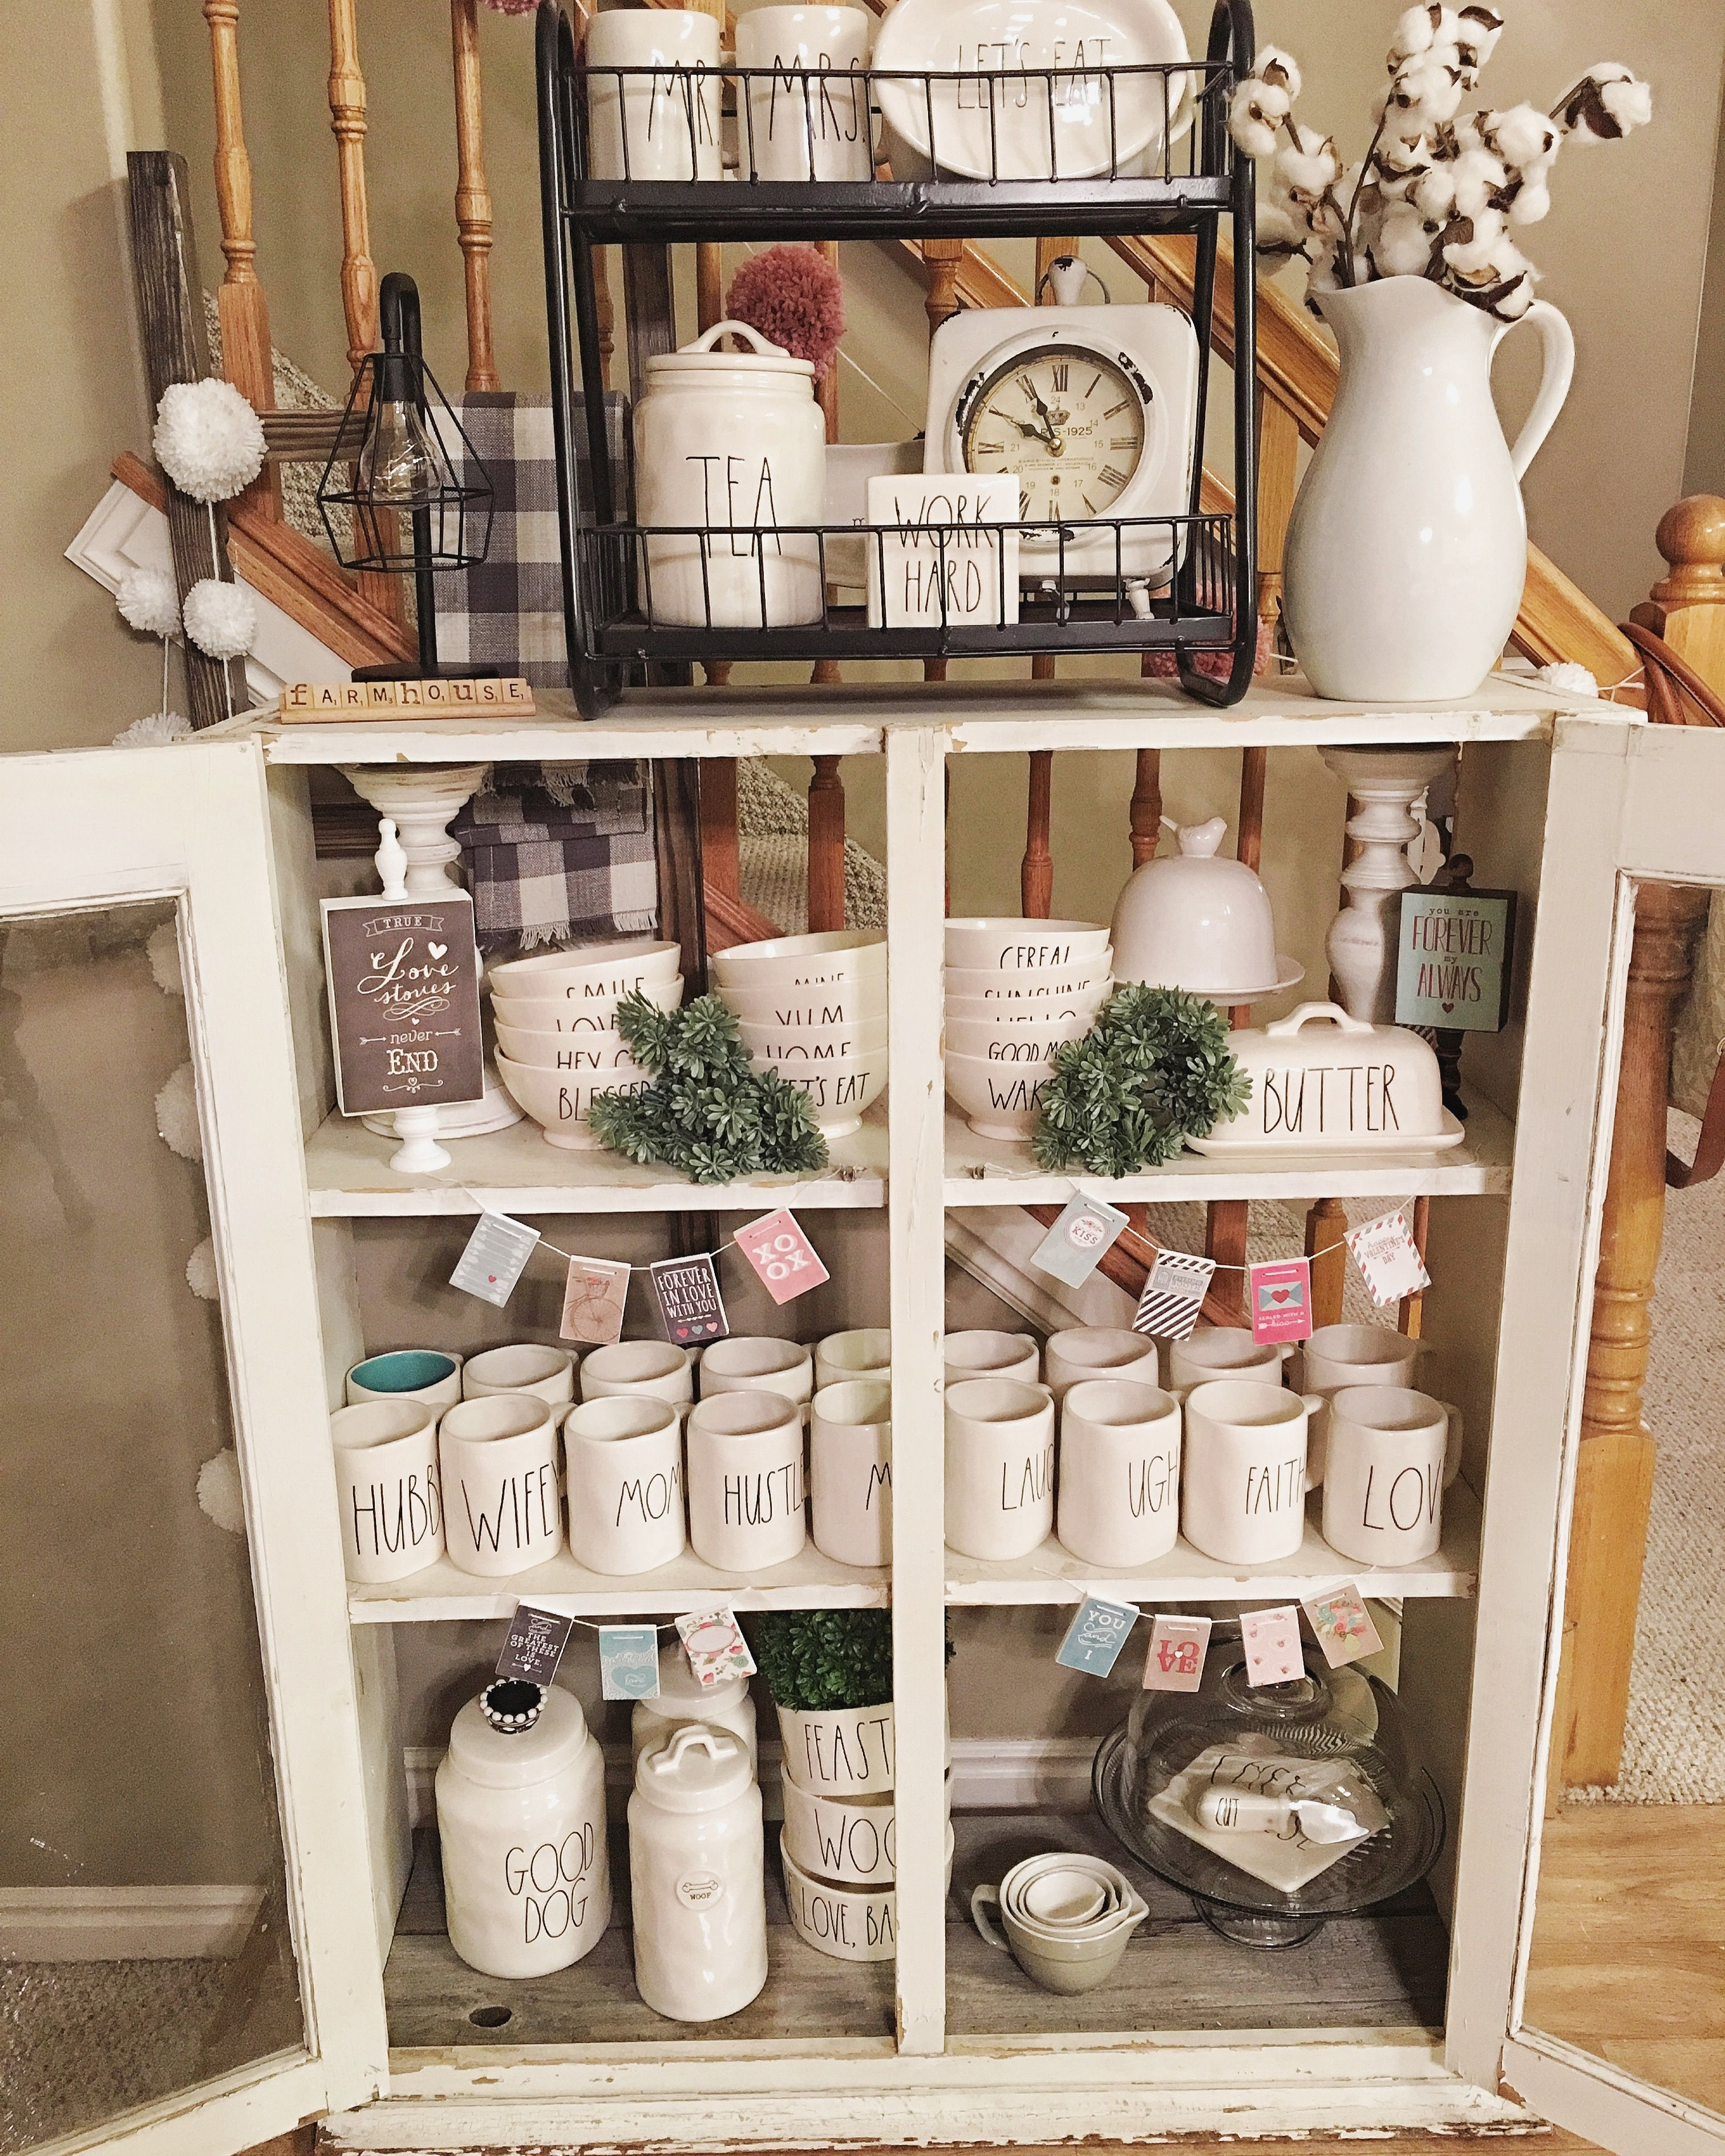 My Rae Dunn Display In My Home Great Deocrating Idea For Farmhouse French Country Modern Country Fixer Upper And Cottage Decor